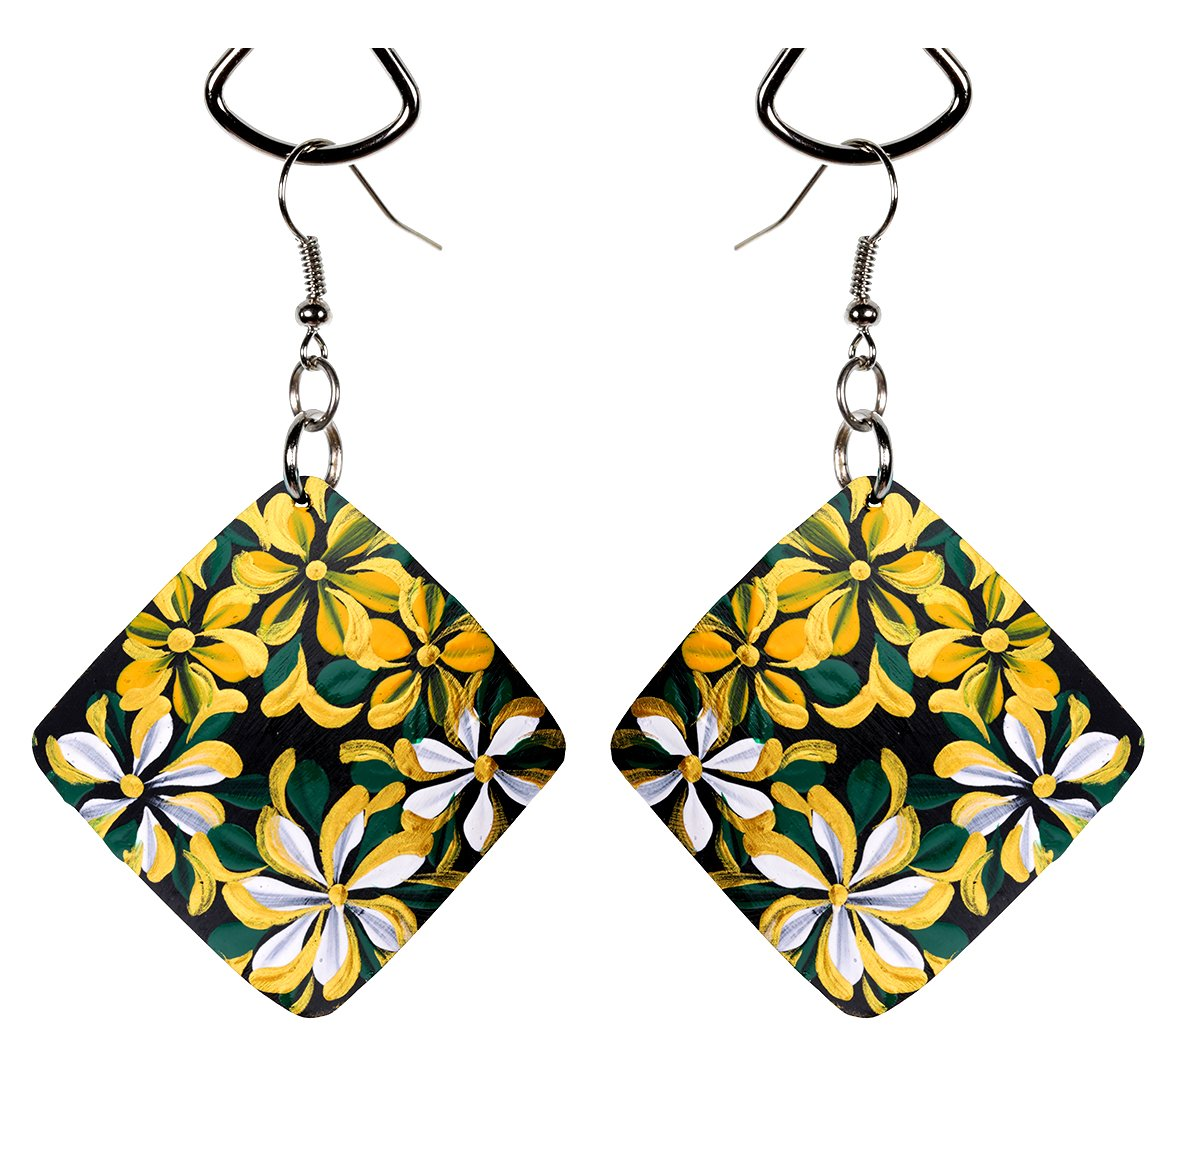 Eco Friendly Square Shape Hand Painted Coco Earrings for Women, Handcrafted Coconut Shell Earrings